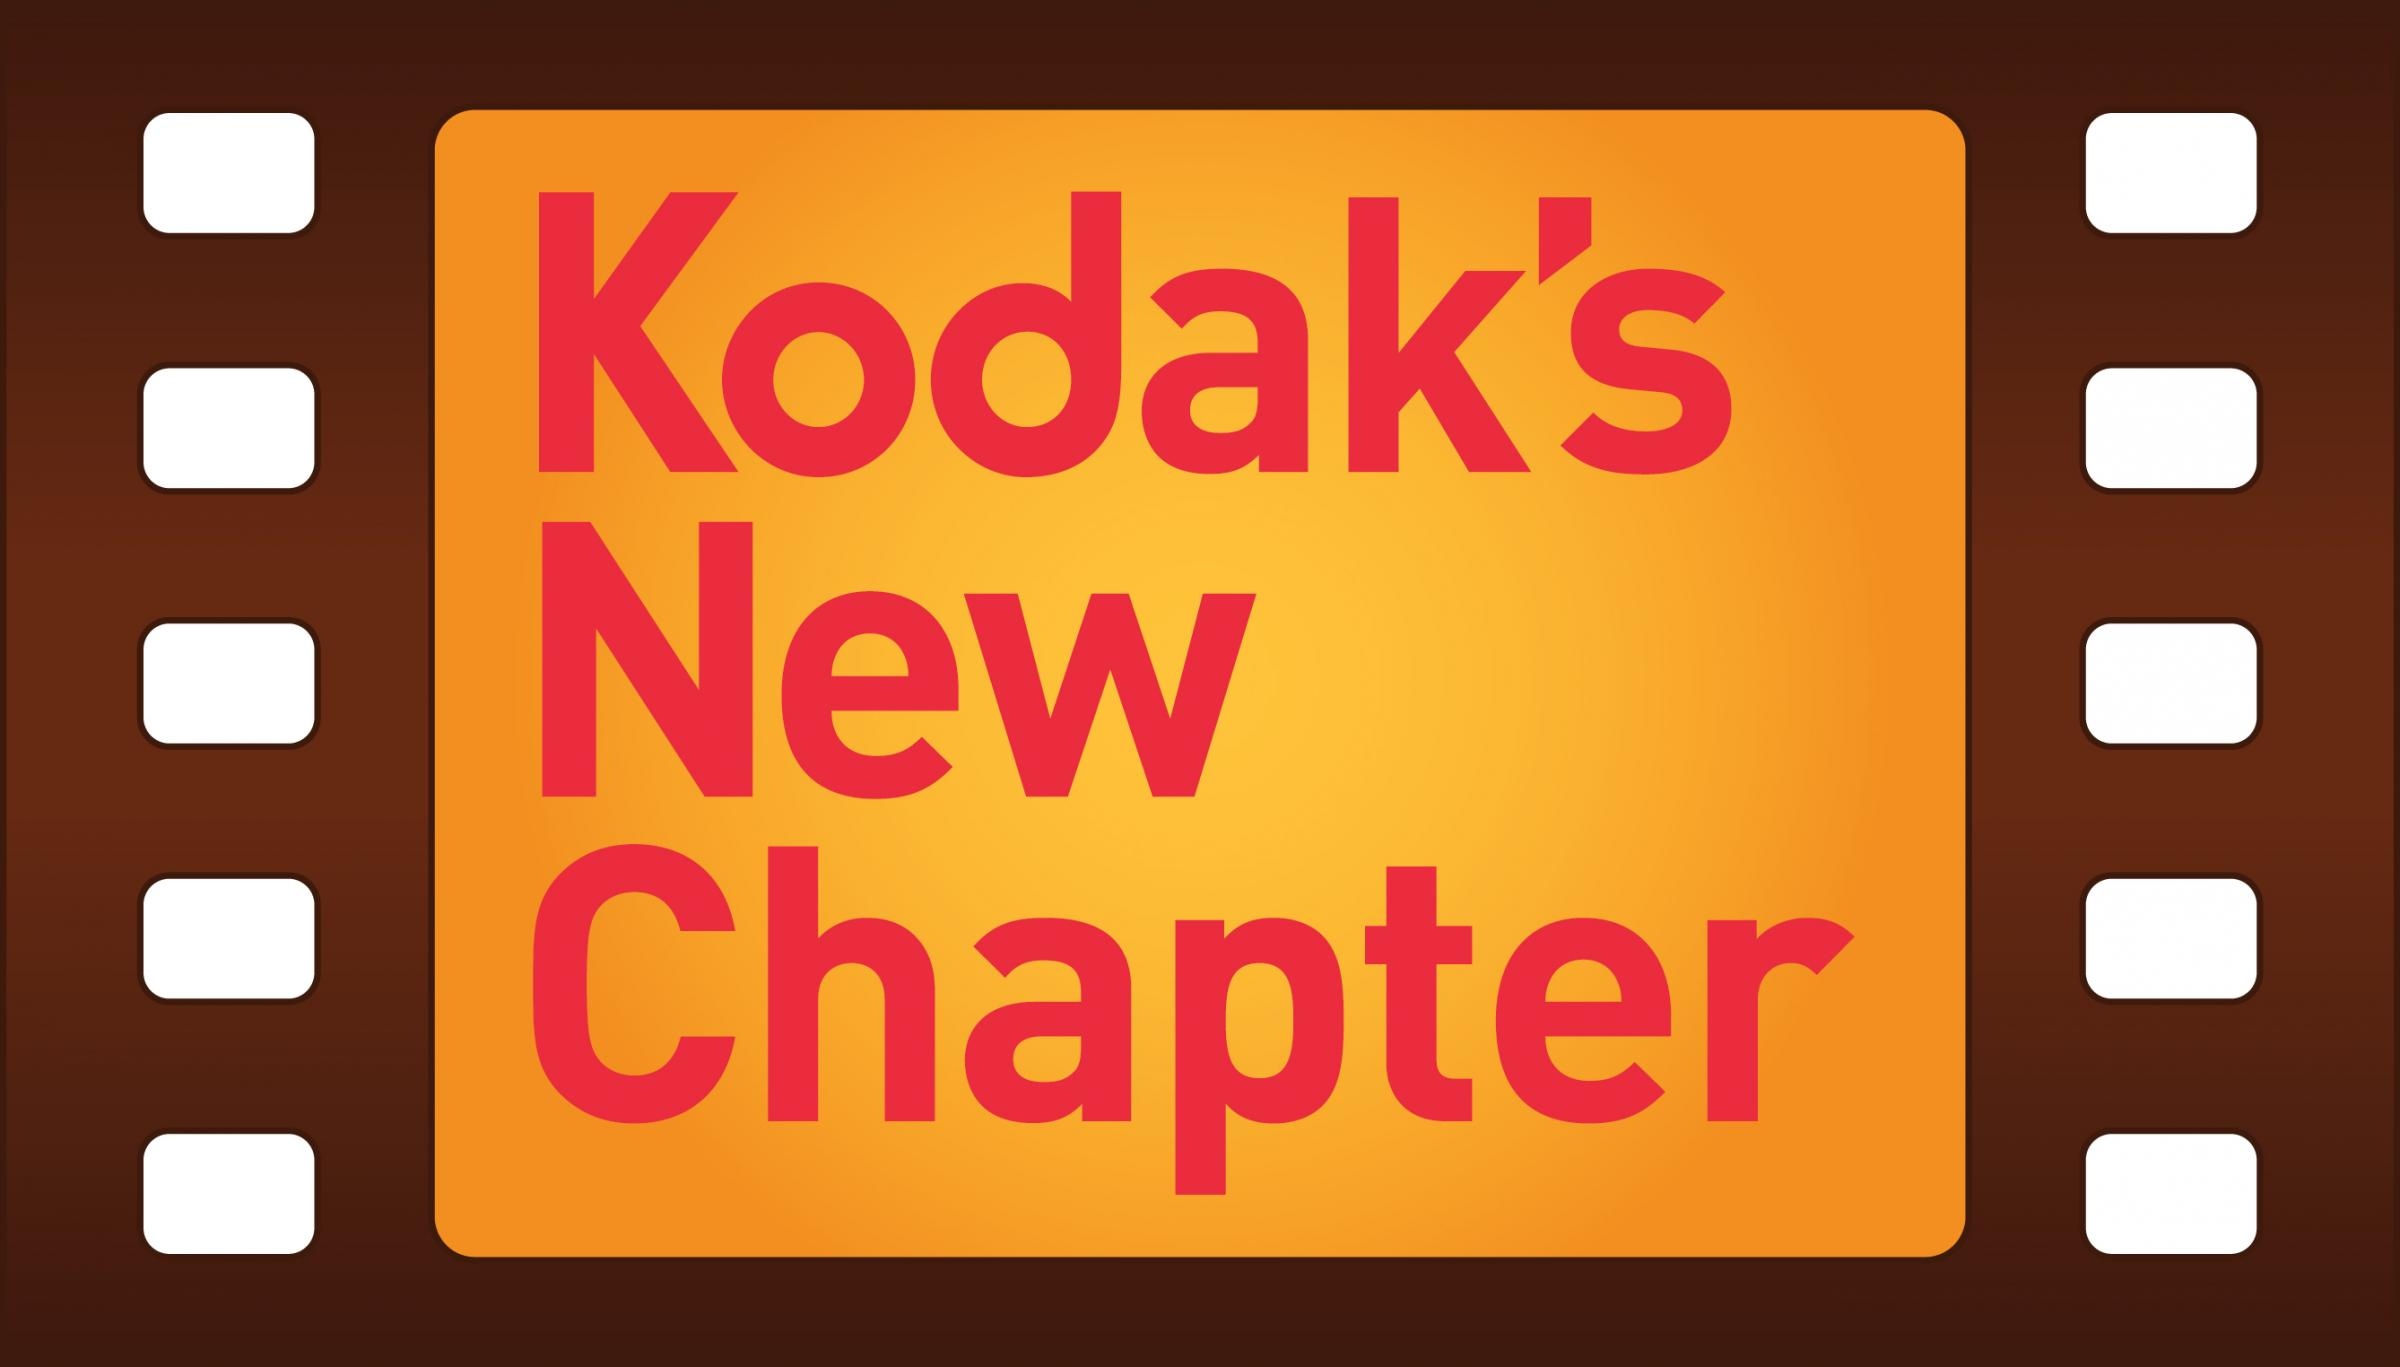 eastman kodak in 2012 will its post bankruptcy strategy Eastman kodak's past success now a washed-out memory  eastman kodak was the apple of its day,  the future is so bleak that kodak is even contemplating bankruptcy.